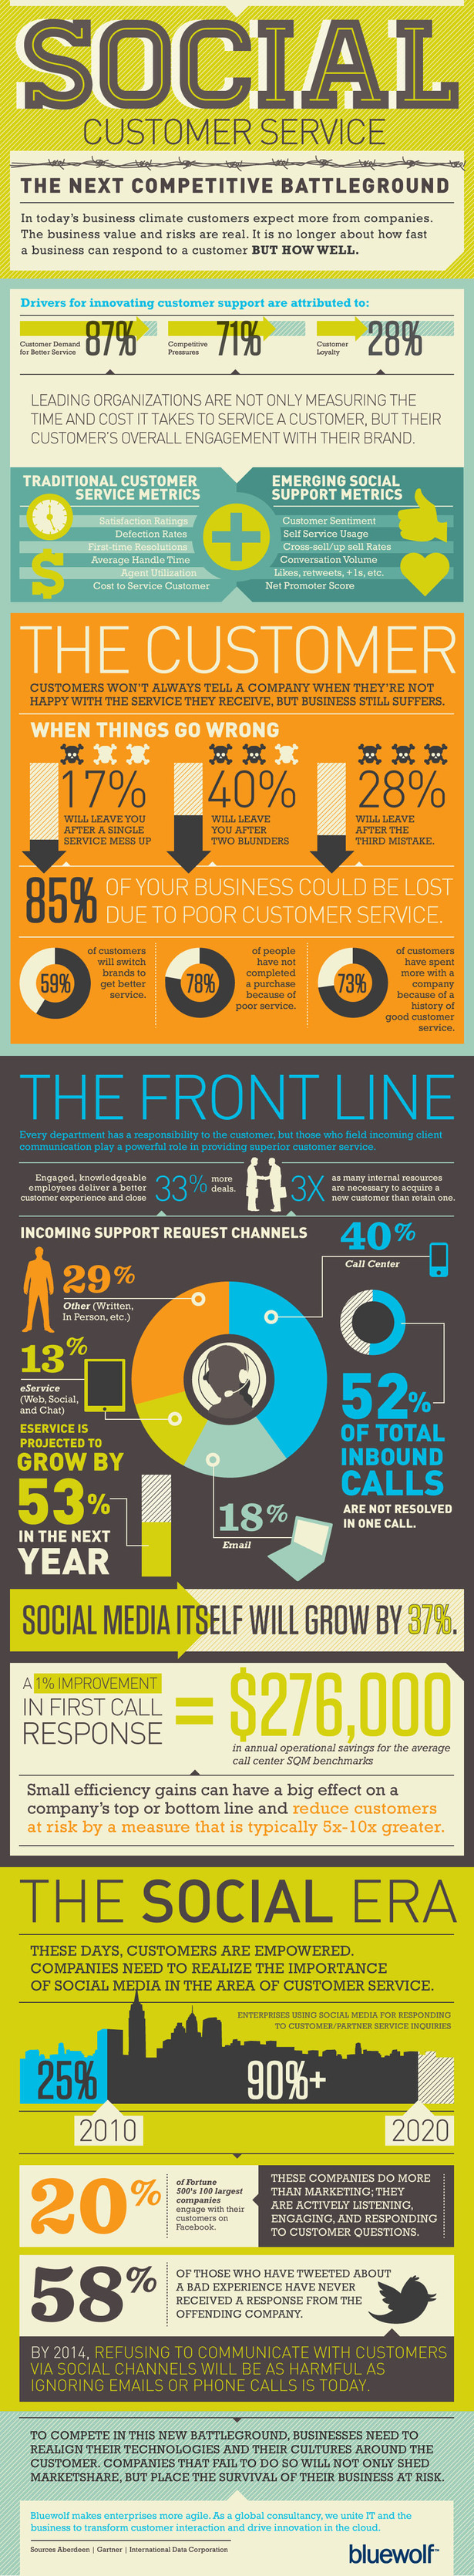 social media and customer service inforgraphic by bluewolf